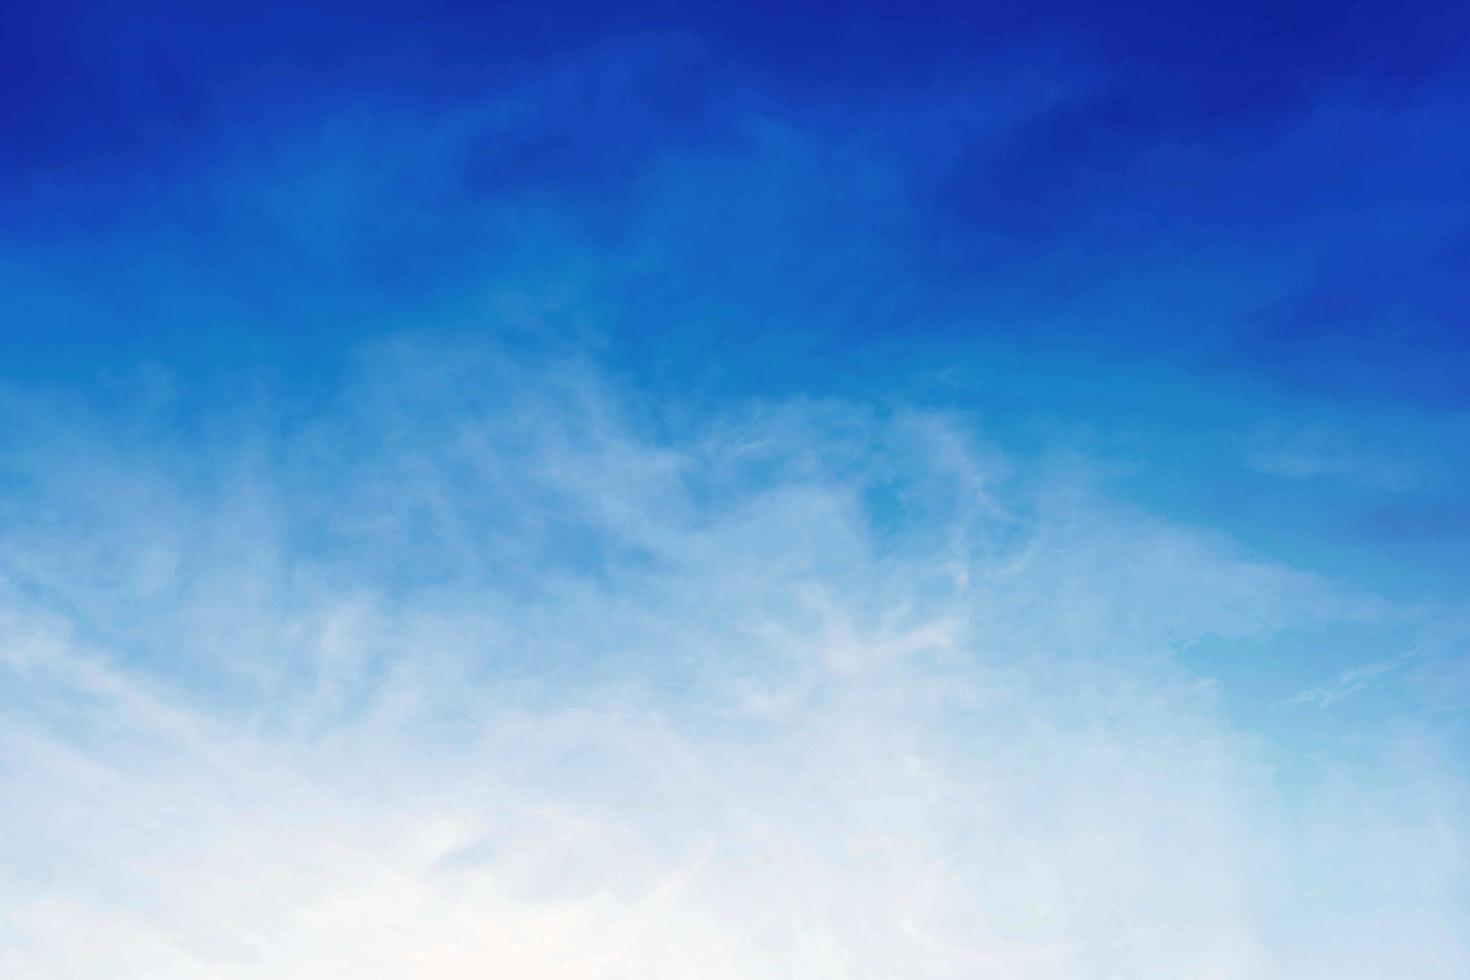 Blue sky with beautiful clouds photo